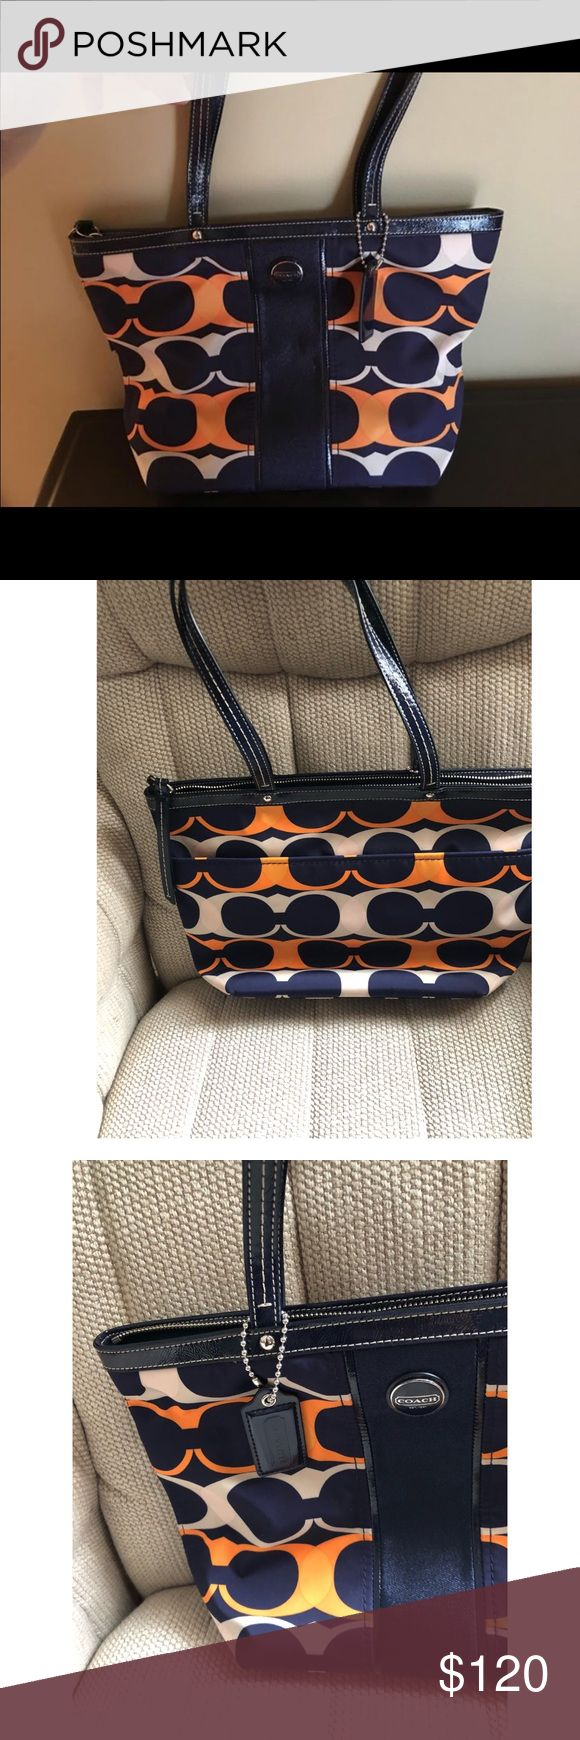 "Coach signature stripe medium Tote Coach signature Stripe Linear Navy blue and orange.barely used like new 13""by 8"" material Nylon Coach Bags Totes"